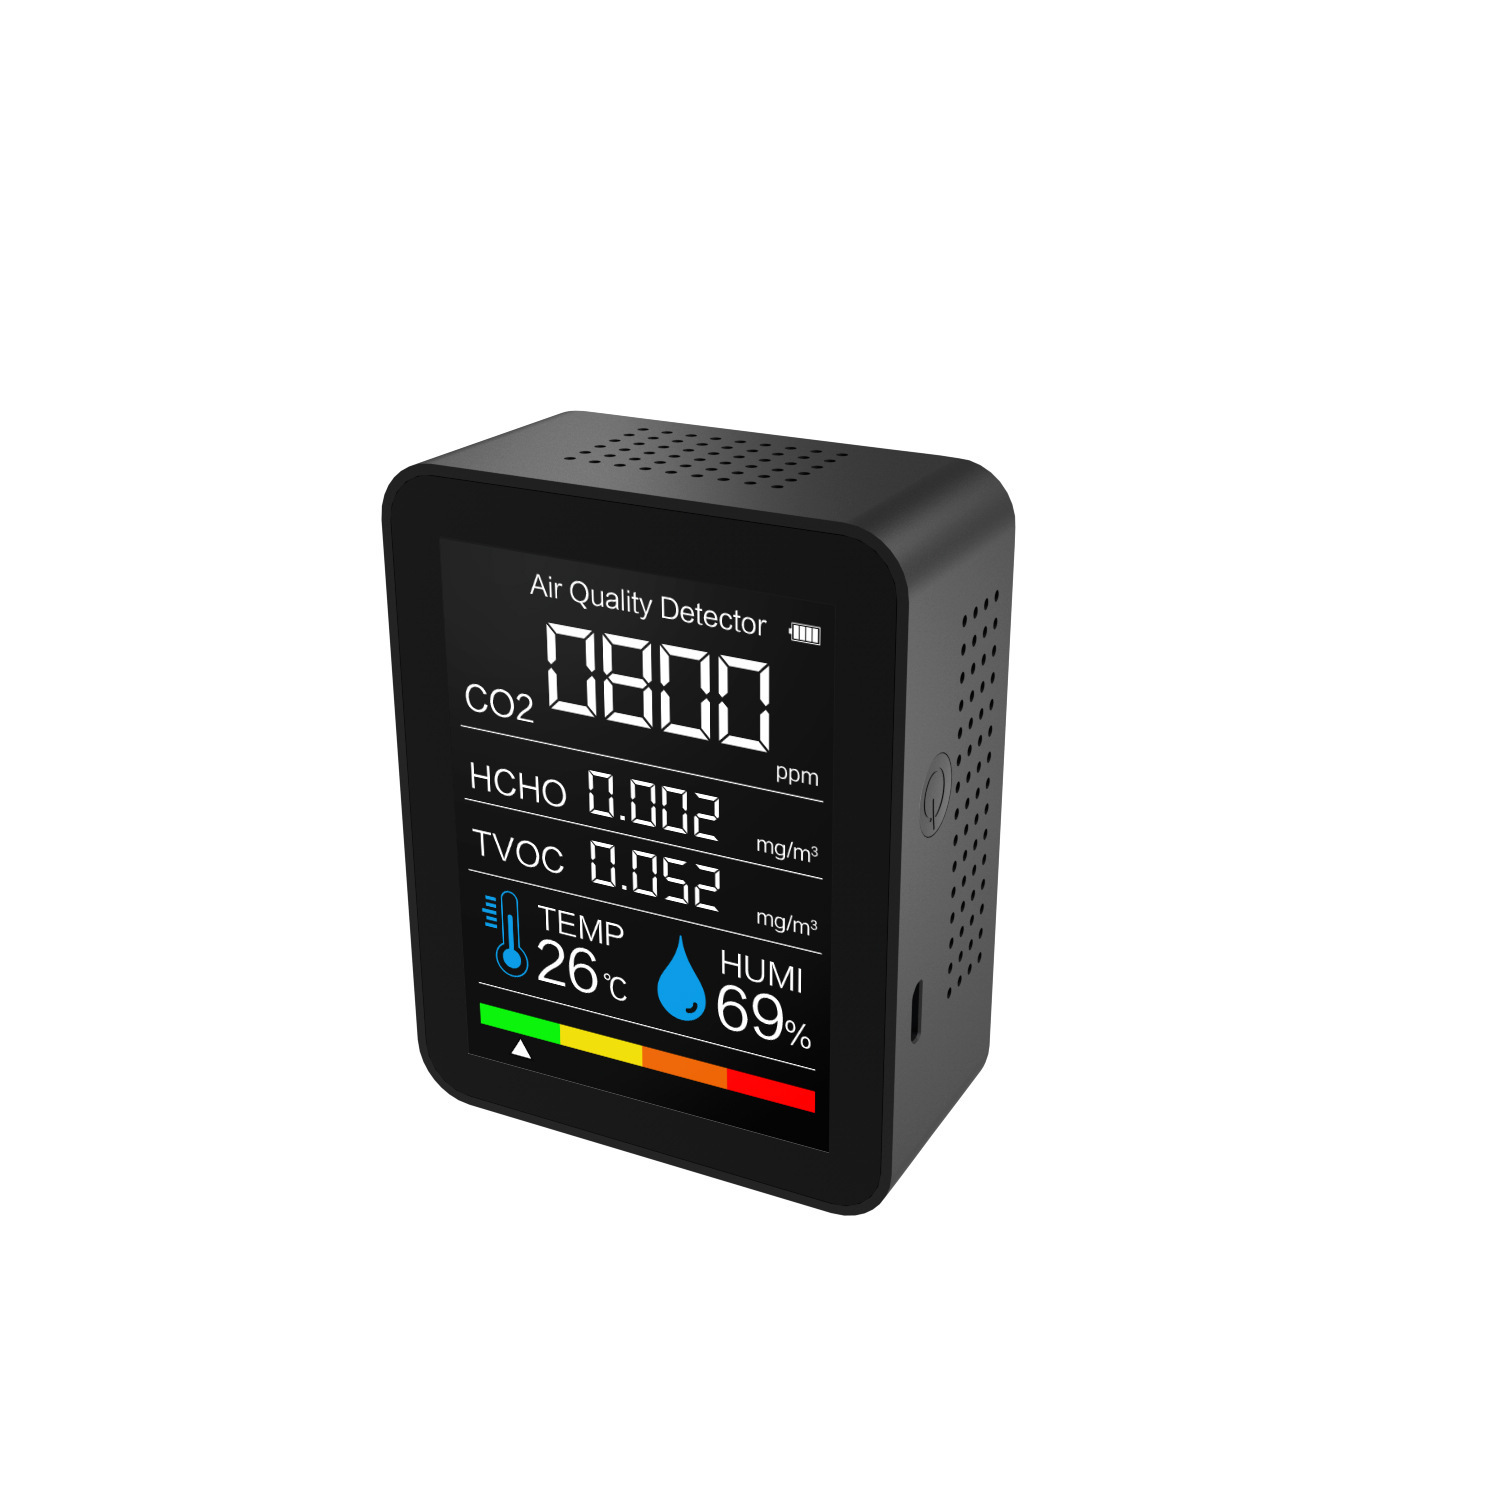 Tvoc Carbon  Dioxide  Detector With Intelligent Color Screen Display Real-time Monitoring And Display black